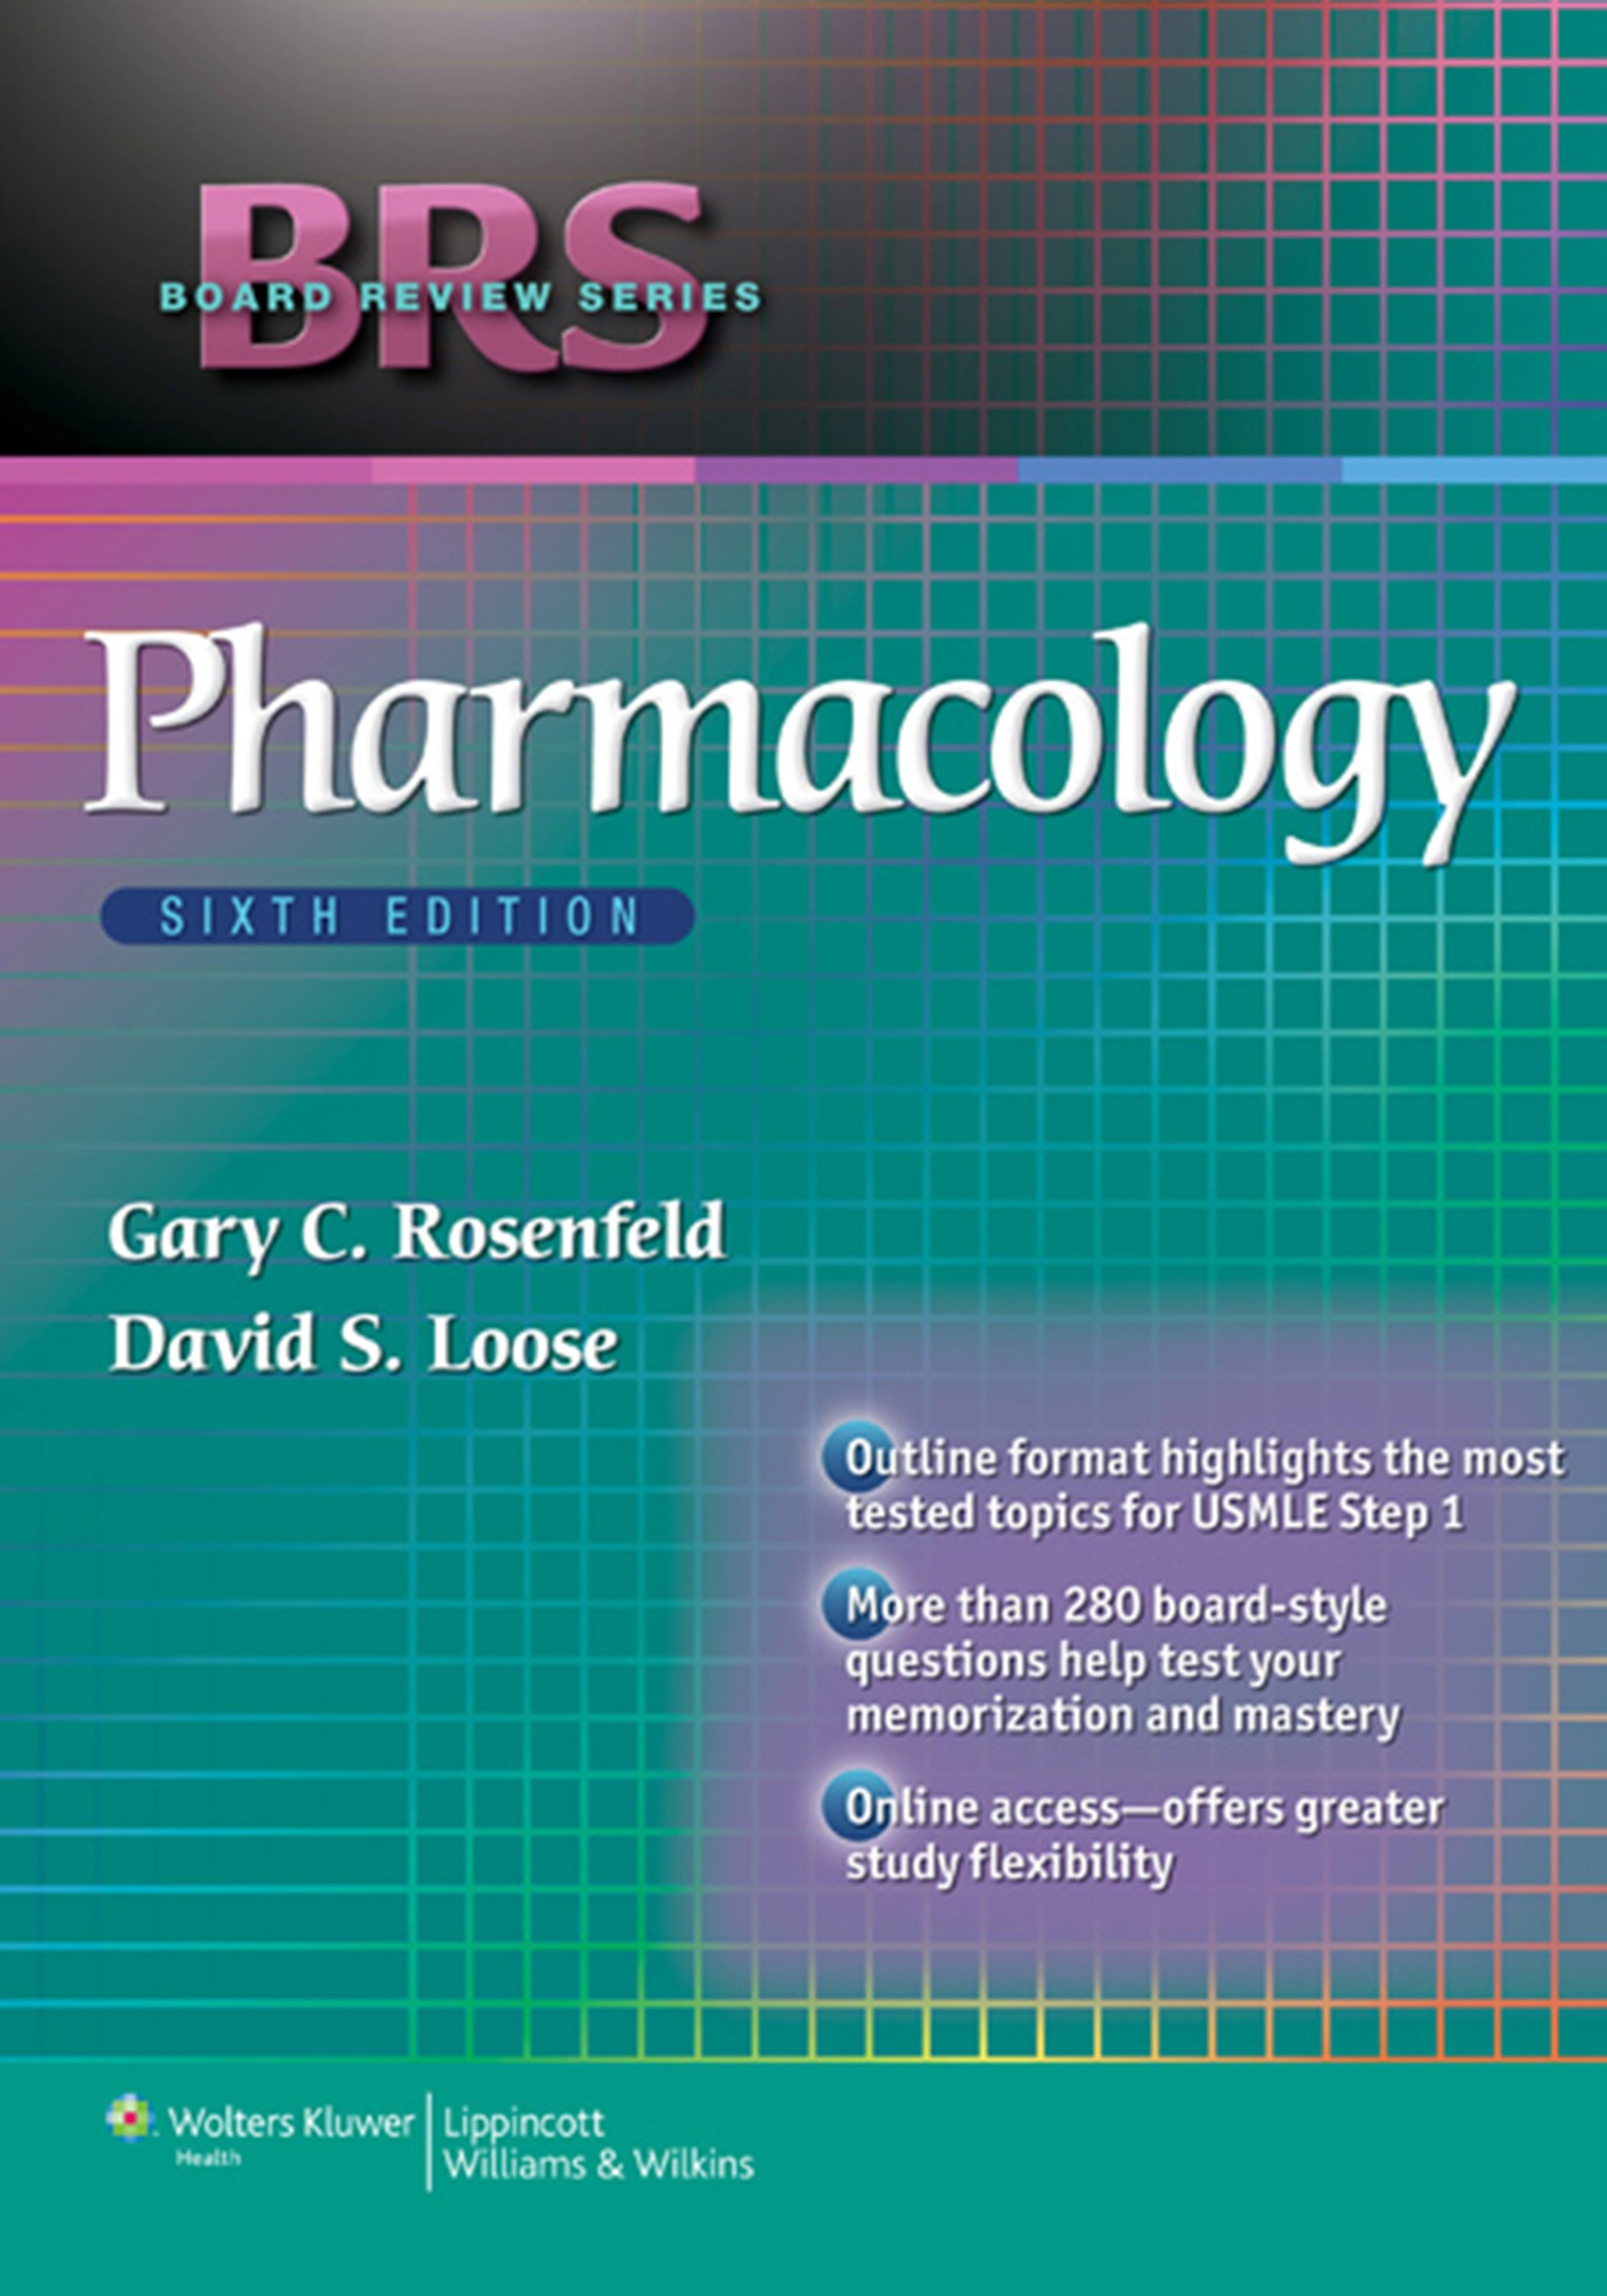 BRS Pharmacology 6th Edition PDF | Pinterest | Pharmacology, Books ...